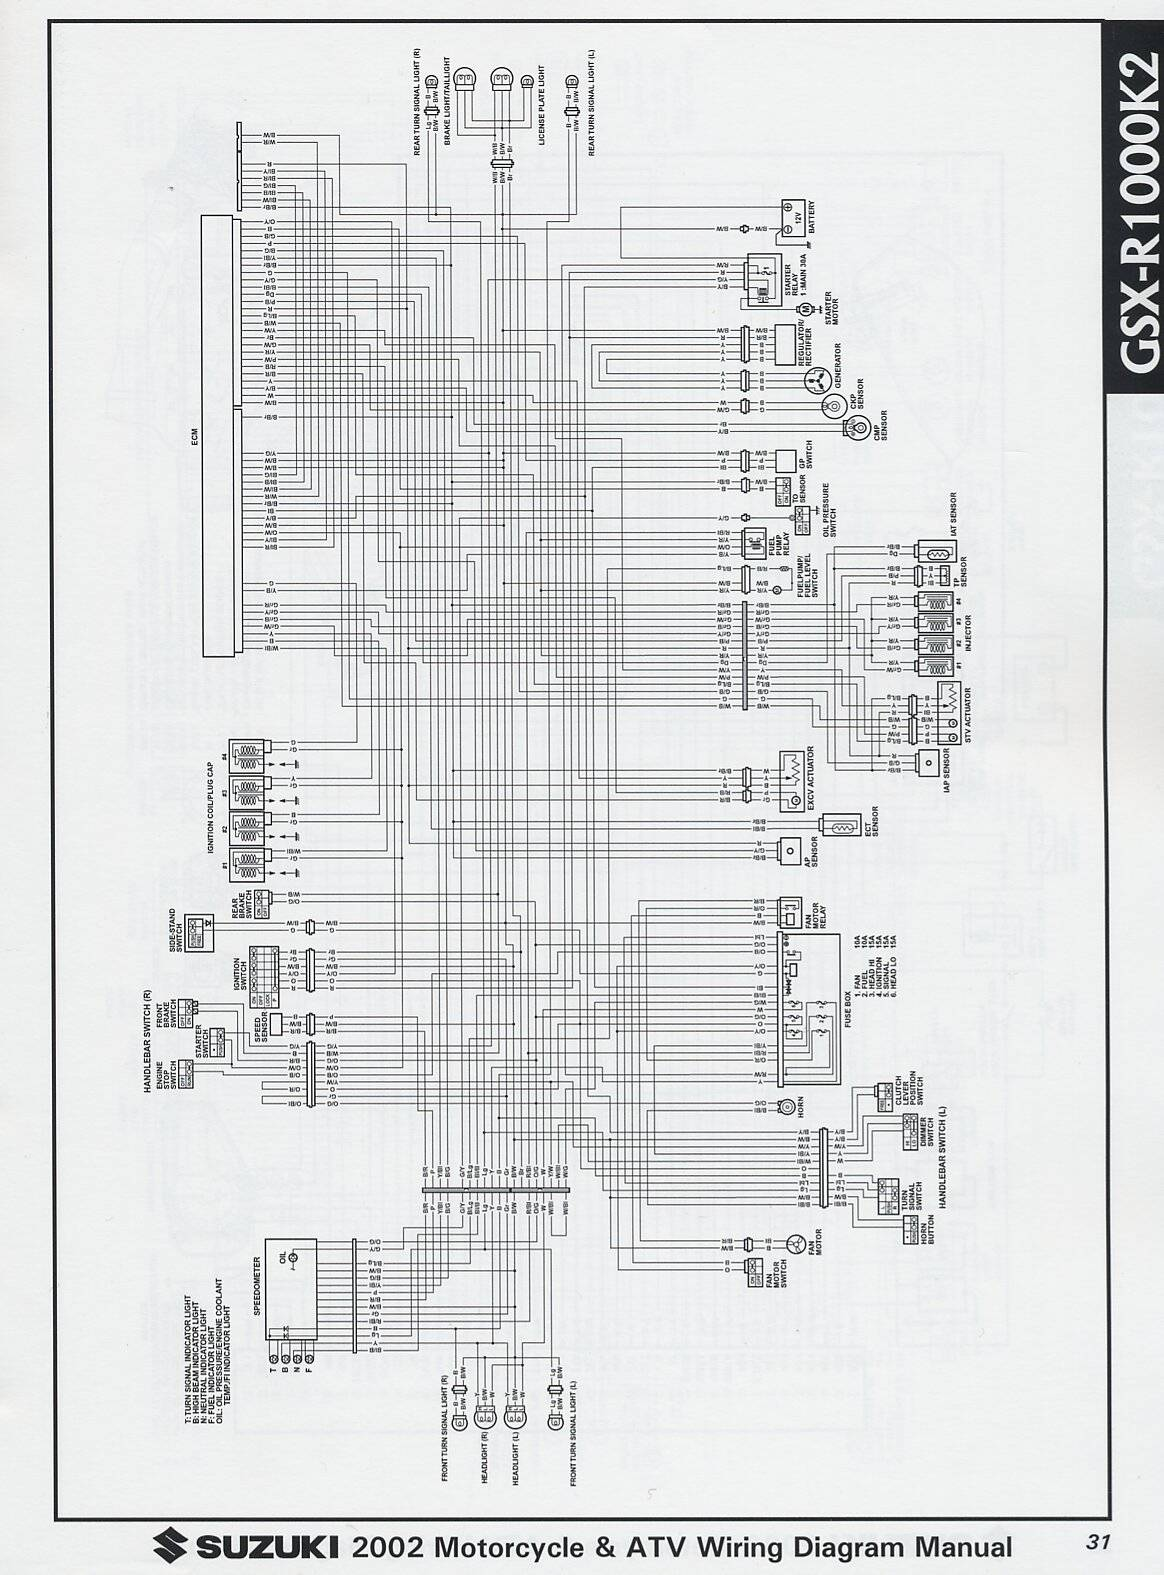 98 suzuki esteem wiring diagram wiring diagram for you • 1998 suzuki esteem wiring diagrams wiring diagram rh 17 1 restaurant freinsheimer hof de suzuki